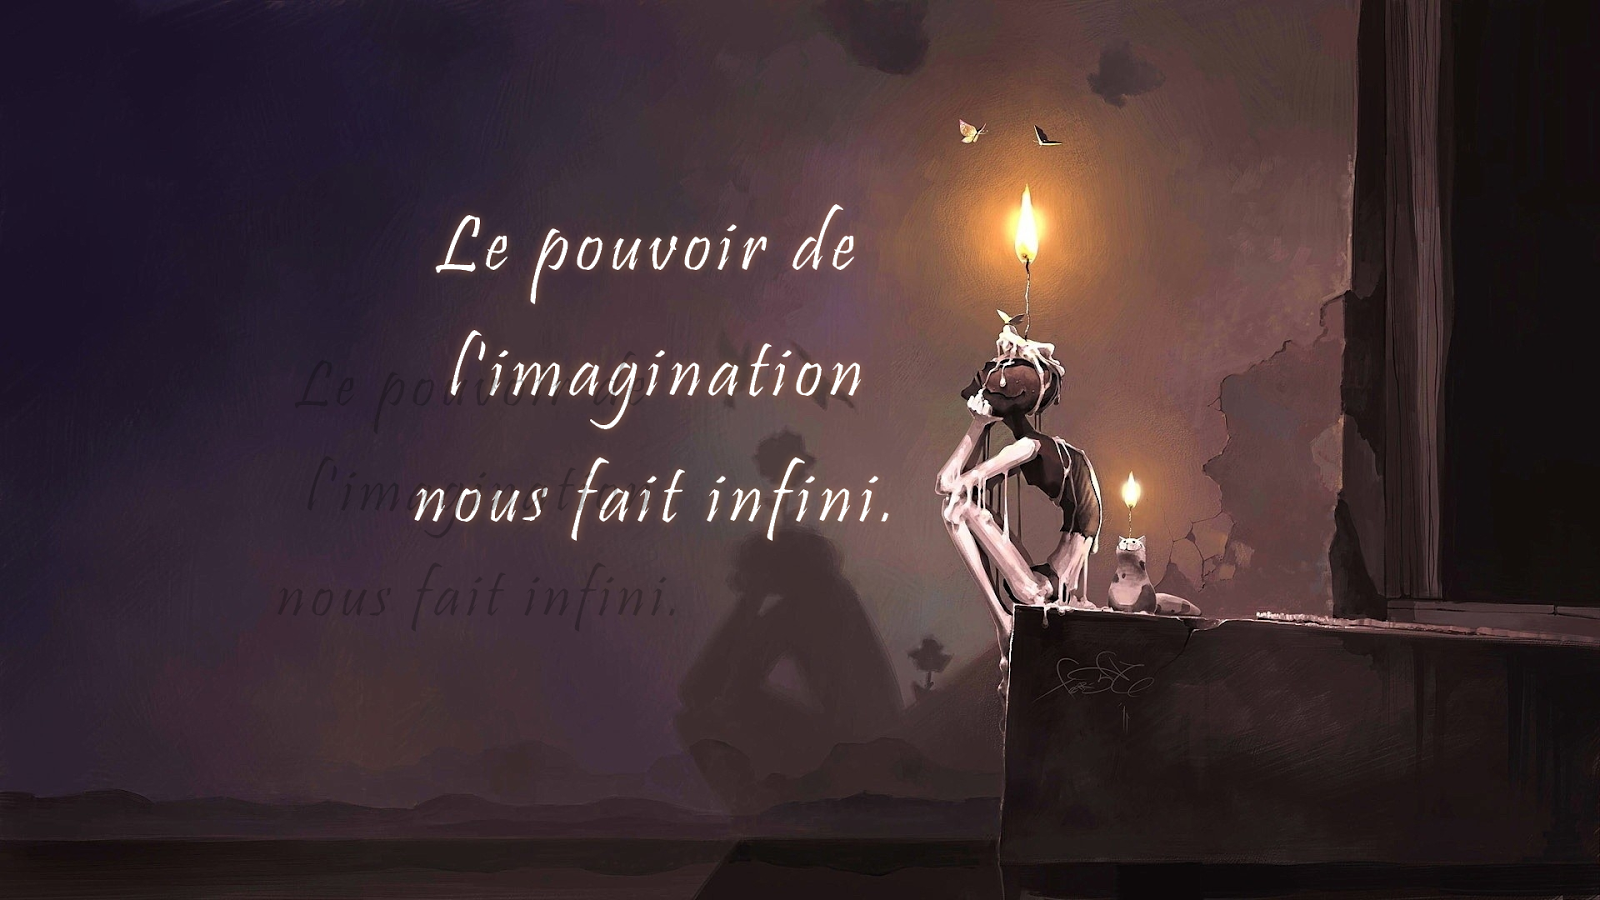 citation sur l'imagination